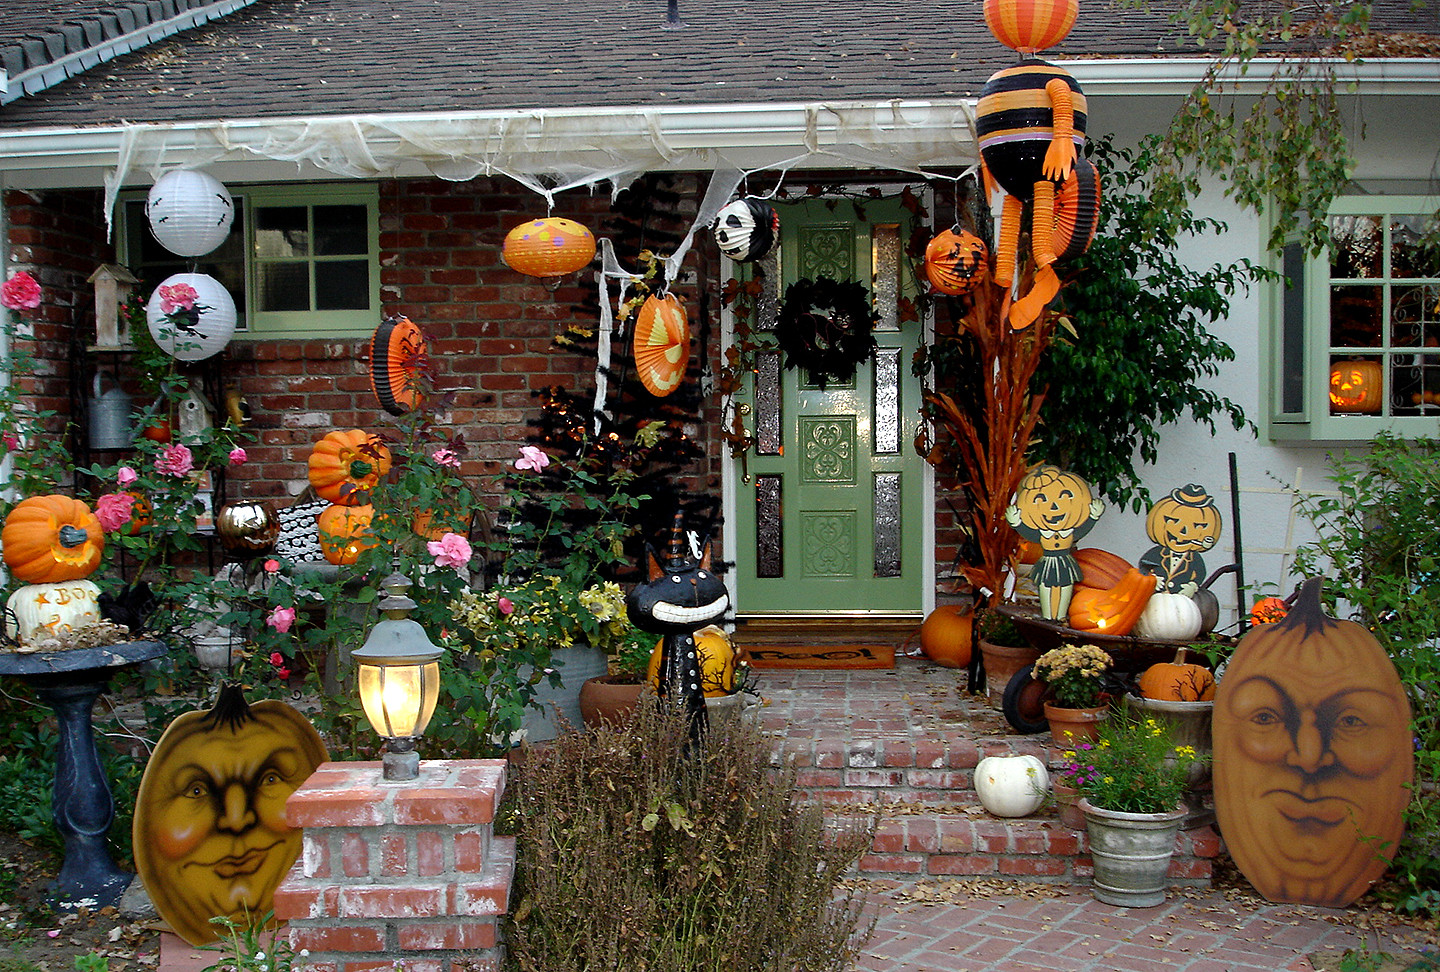 Halloween Decoration Outdoor  SPOOKY OUTDOOR DECORATIONS FOR THE HALLOWEEN NIGHT